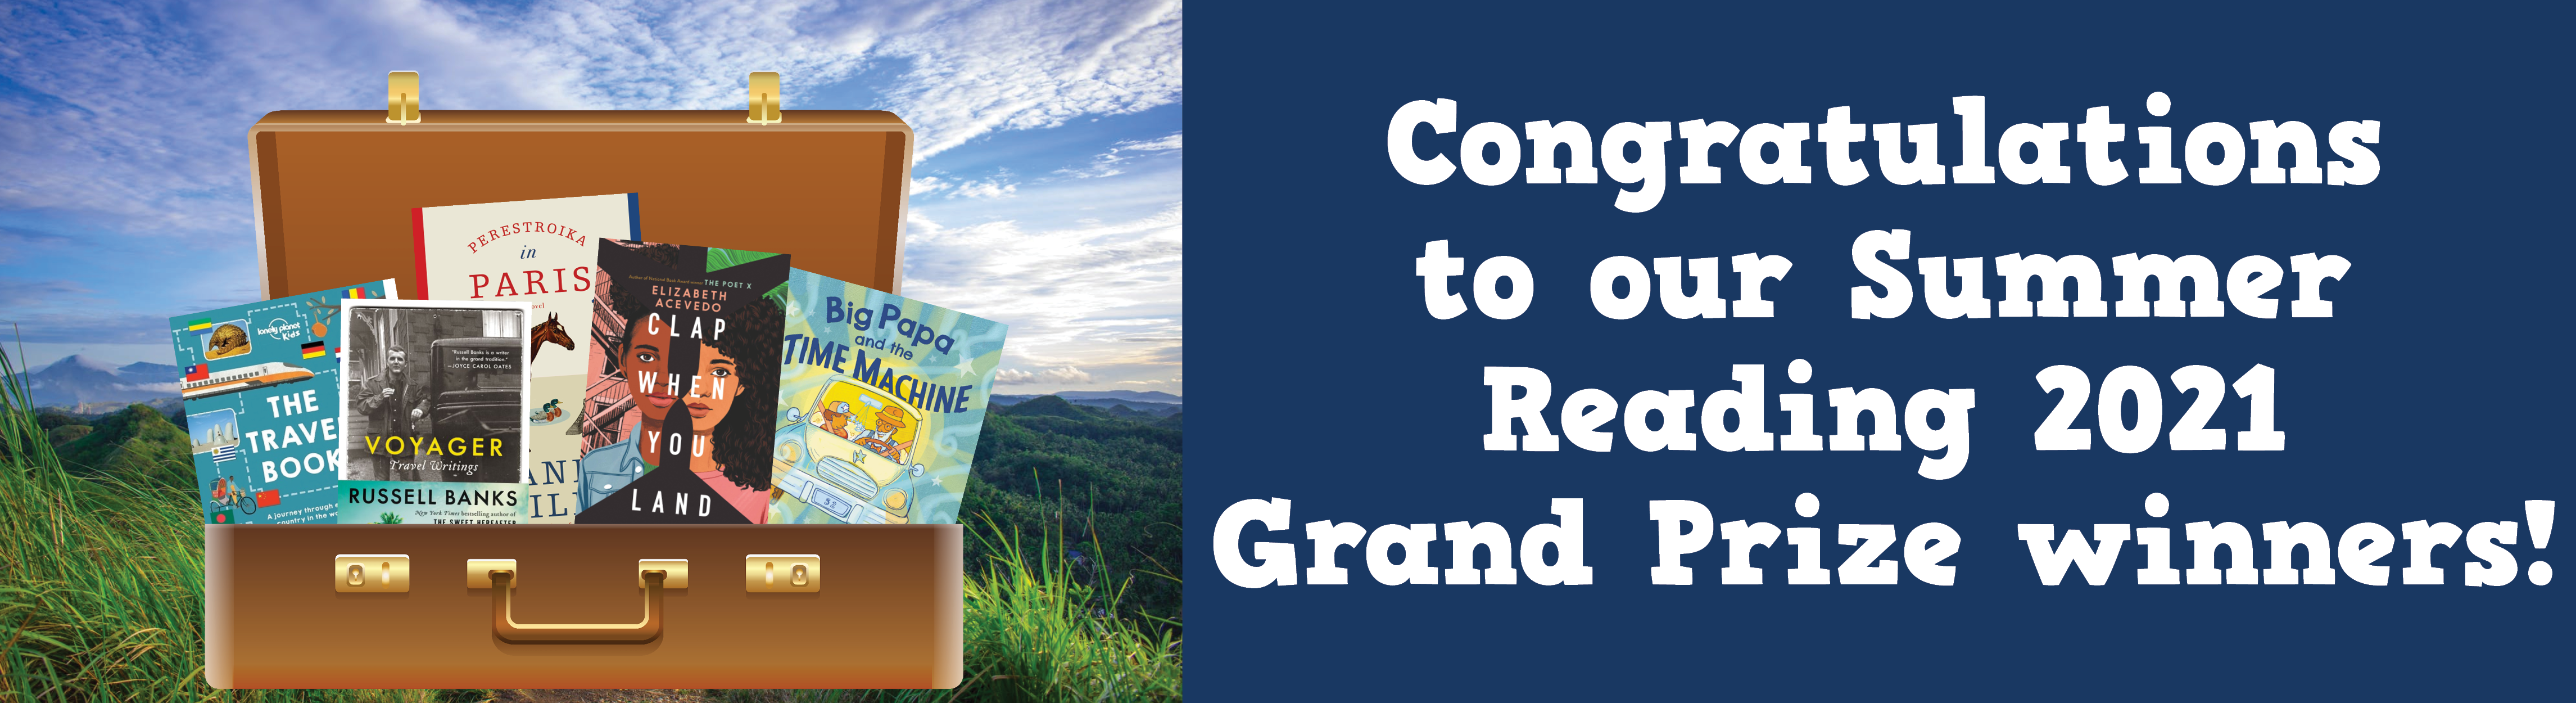 Summer Reading 2021 Grand Prize Winners